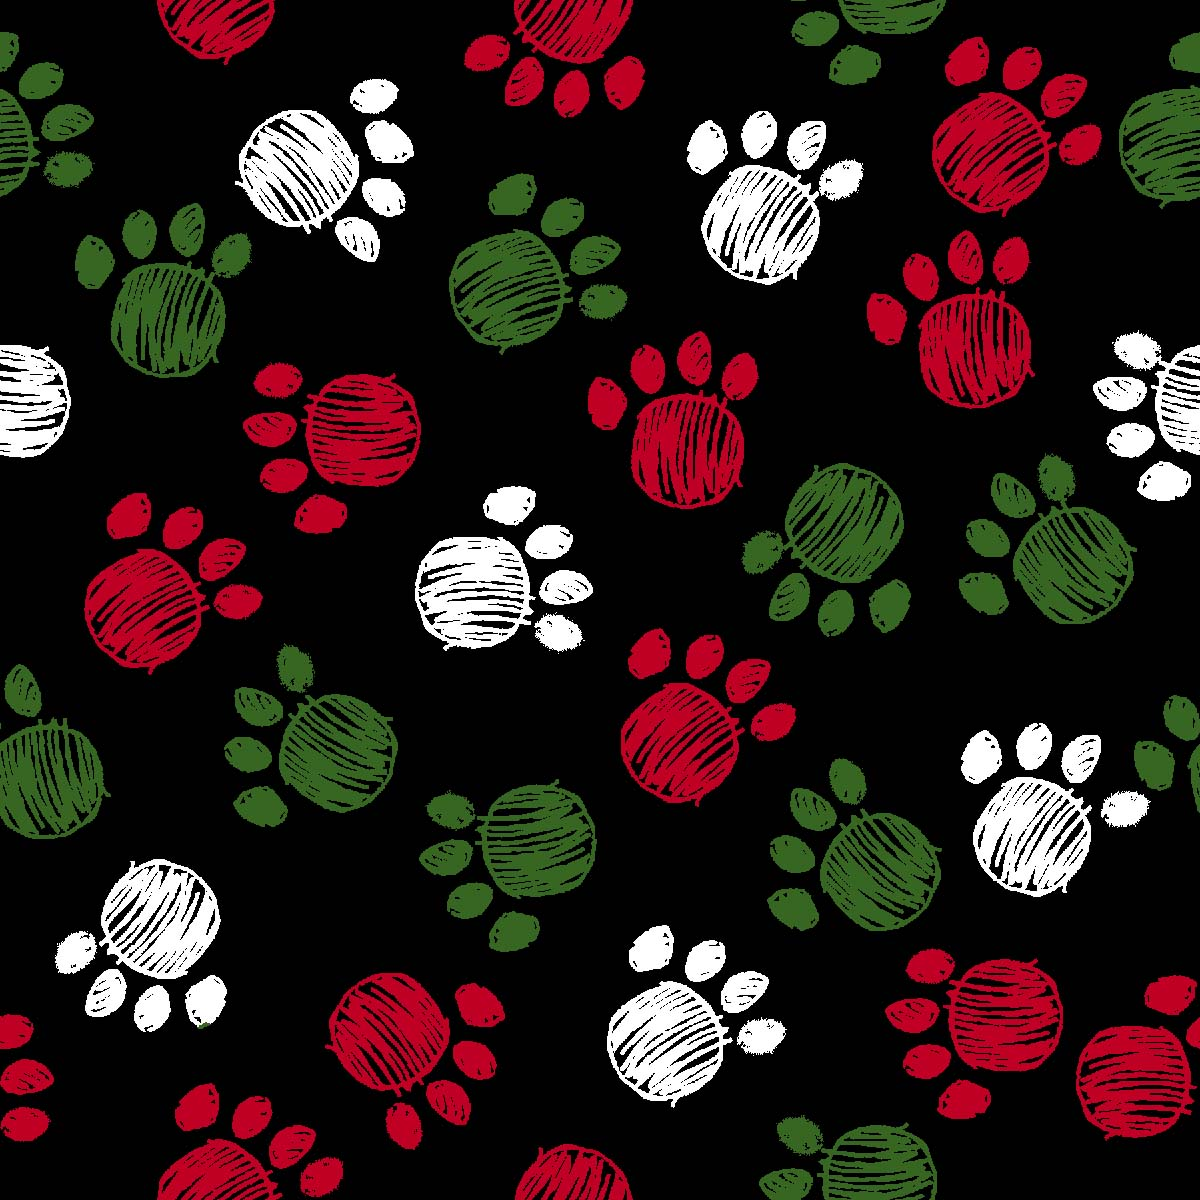 "FABRIC EDITIONS, COTTON FABRIC, FAT QUARTER 18""X21"", HOLIDAY BOWWOW PAWS"